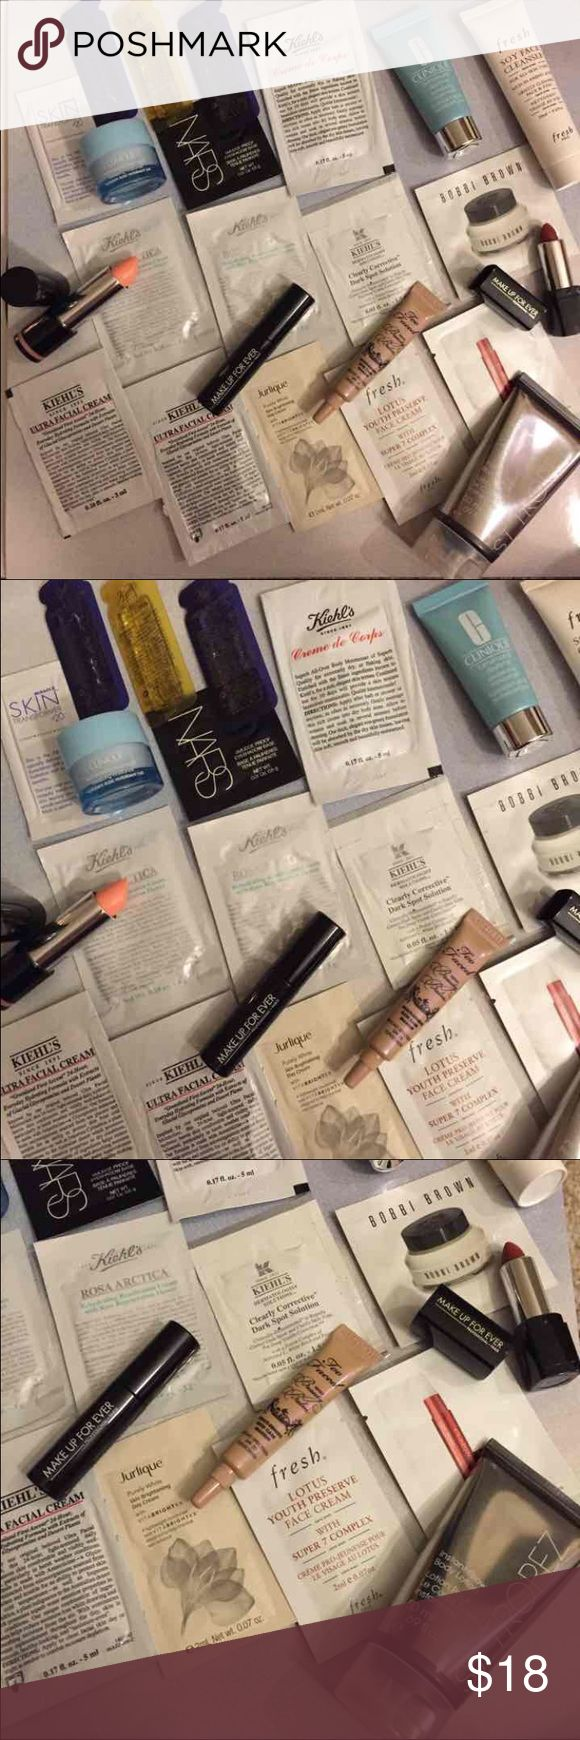 HUGE 23 Piece Beauty Bundle Fresh Youth Cream Jurlique Skin Day Cream Kiehls Face Cream x2 Kiehls Rosa Arctica x2 Kiehls Clearly Corrective Too Faced Tinted Beauty Balm Clarins Correcting Concentrate Bobbi Brown Face Cream Kiehls Crème de Corps NARS Eyeshadow Base Kiehls Daily Concentrate Kiehls Midnight Concentrate x2 Miracle Skin Transformer Fresh Soy Cleanser Clinique Daytime Moisturizer Clinique Overnight Moisturizer Make Up For Ever Mascara Make Up For Ever Lipstick Lanternshine…